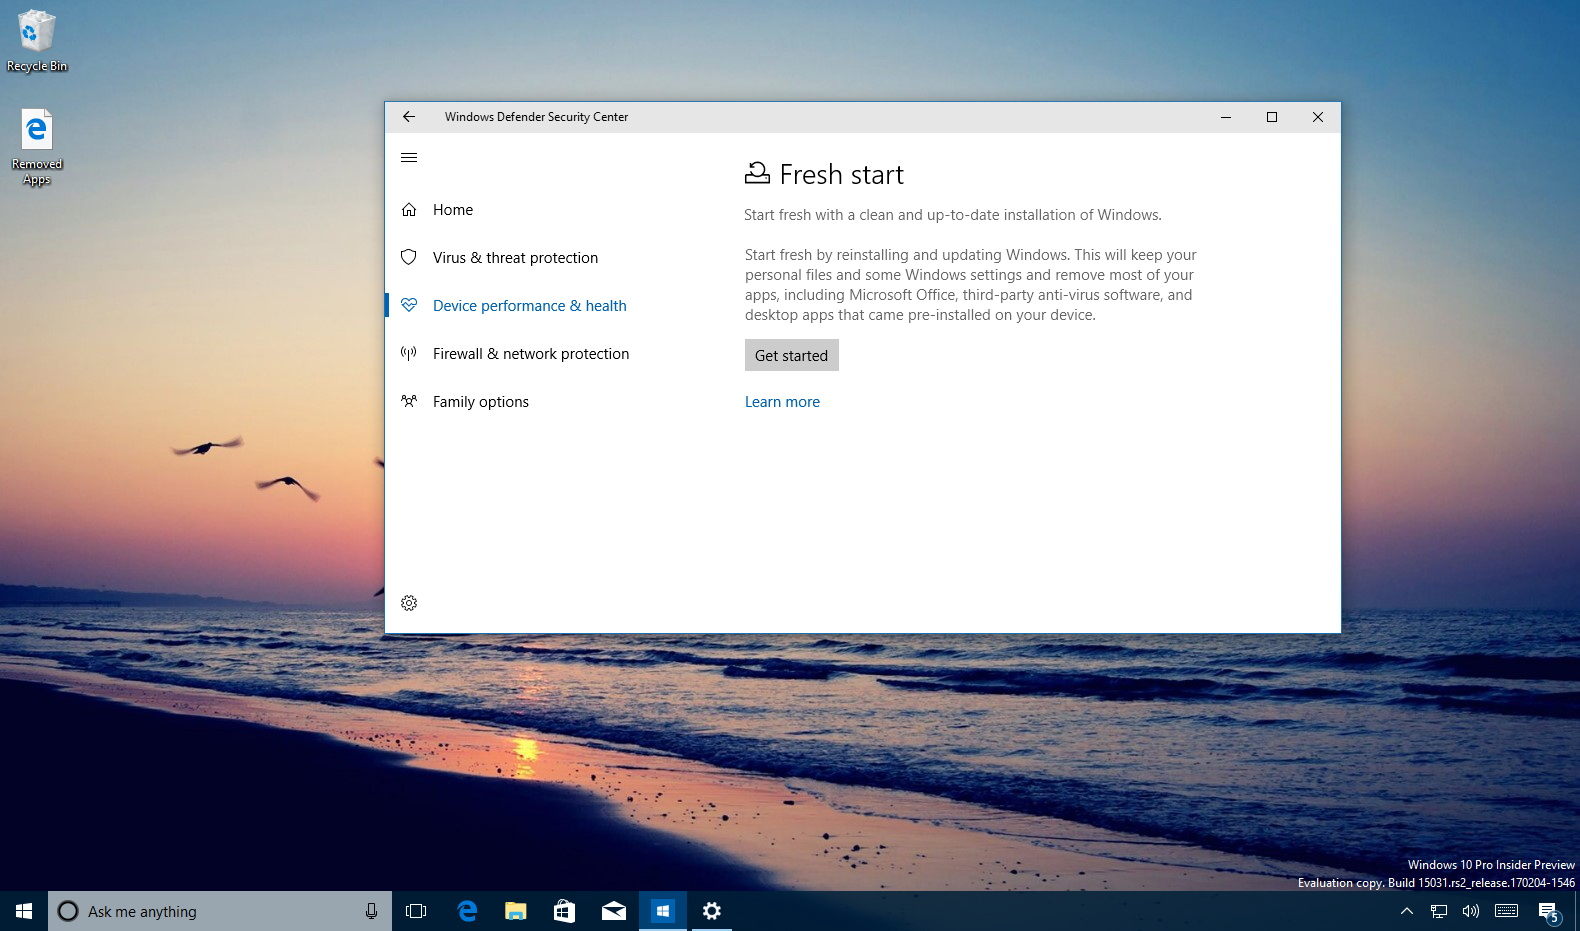 How To Reinstall Windows 10 Without Losing Your Data | DellDriverTM.com